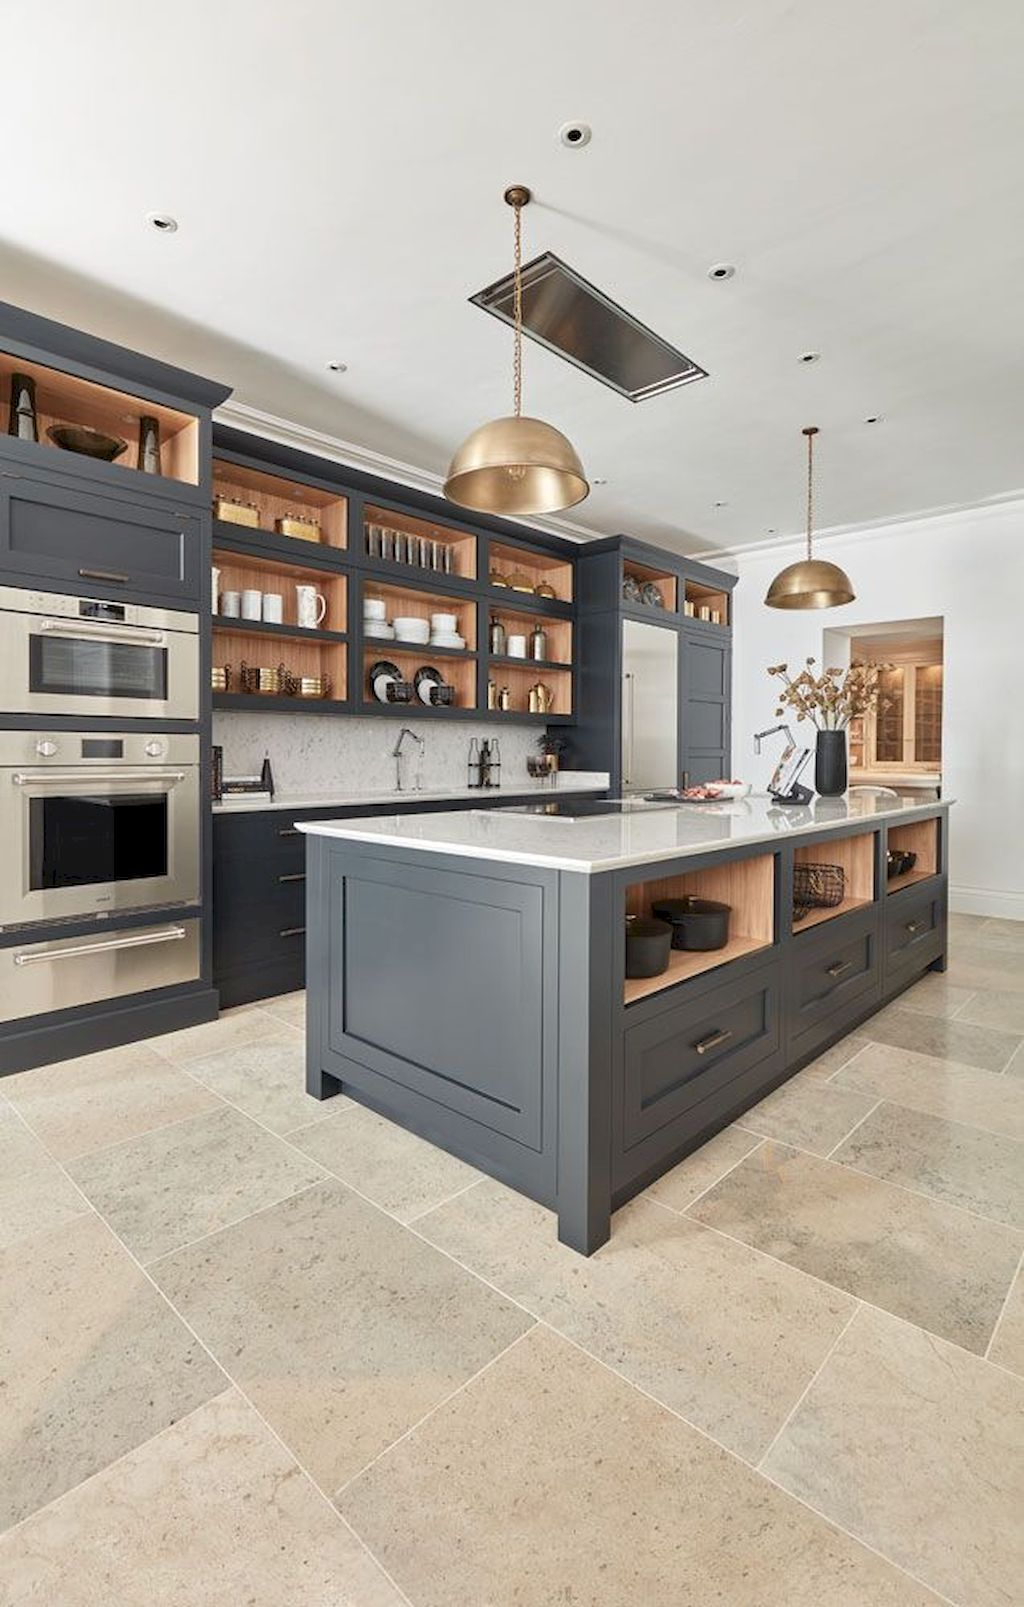 Prodigious Kitchen Reworking Suggestions And Recommendations For Your Residence In 2020 Shaker Style Kitchen Cabinets Grey Shaker Kitchen Kitchen Cabinet Styles